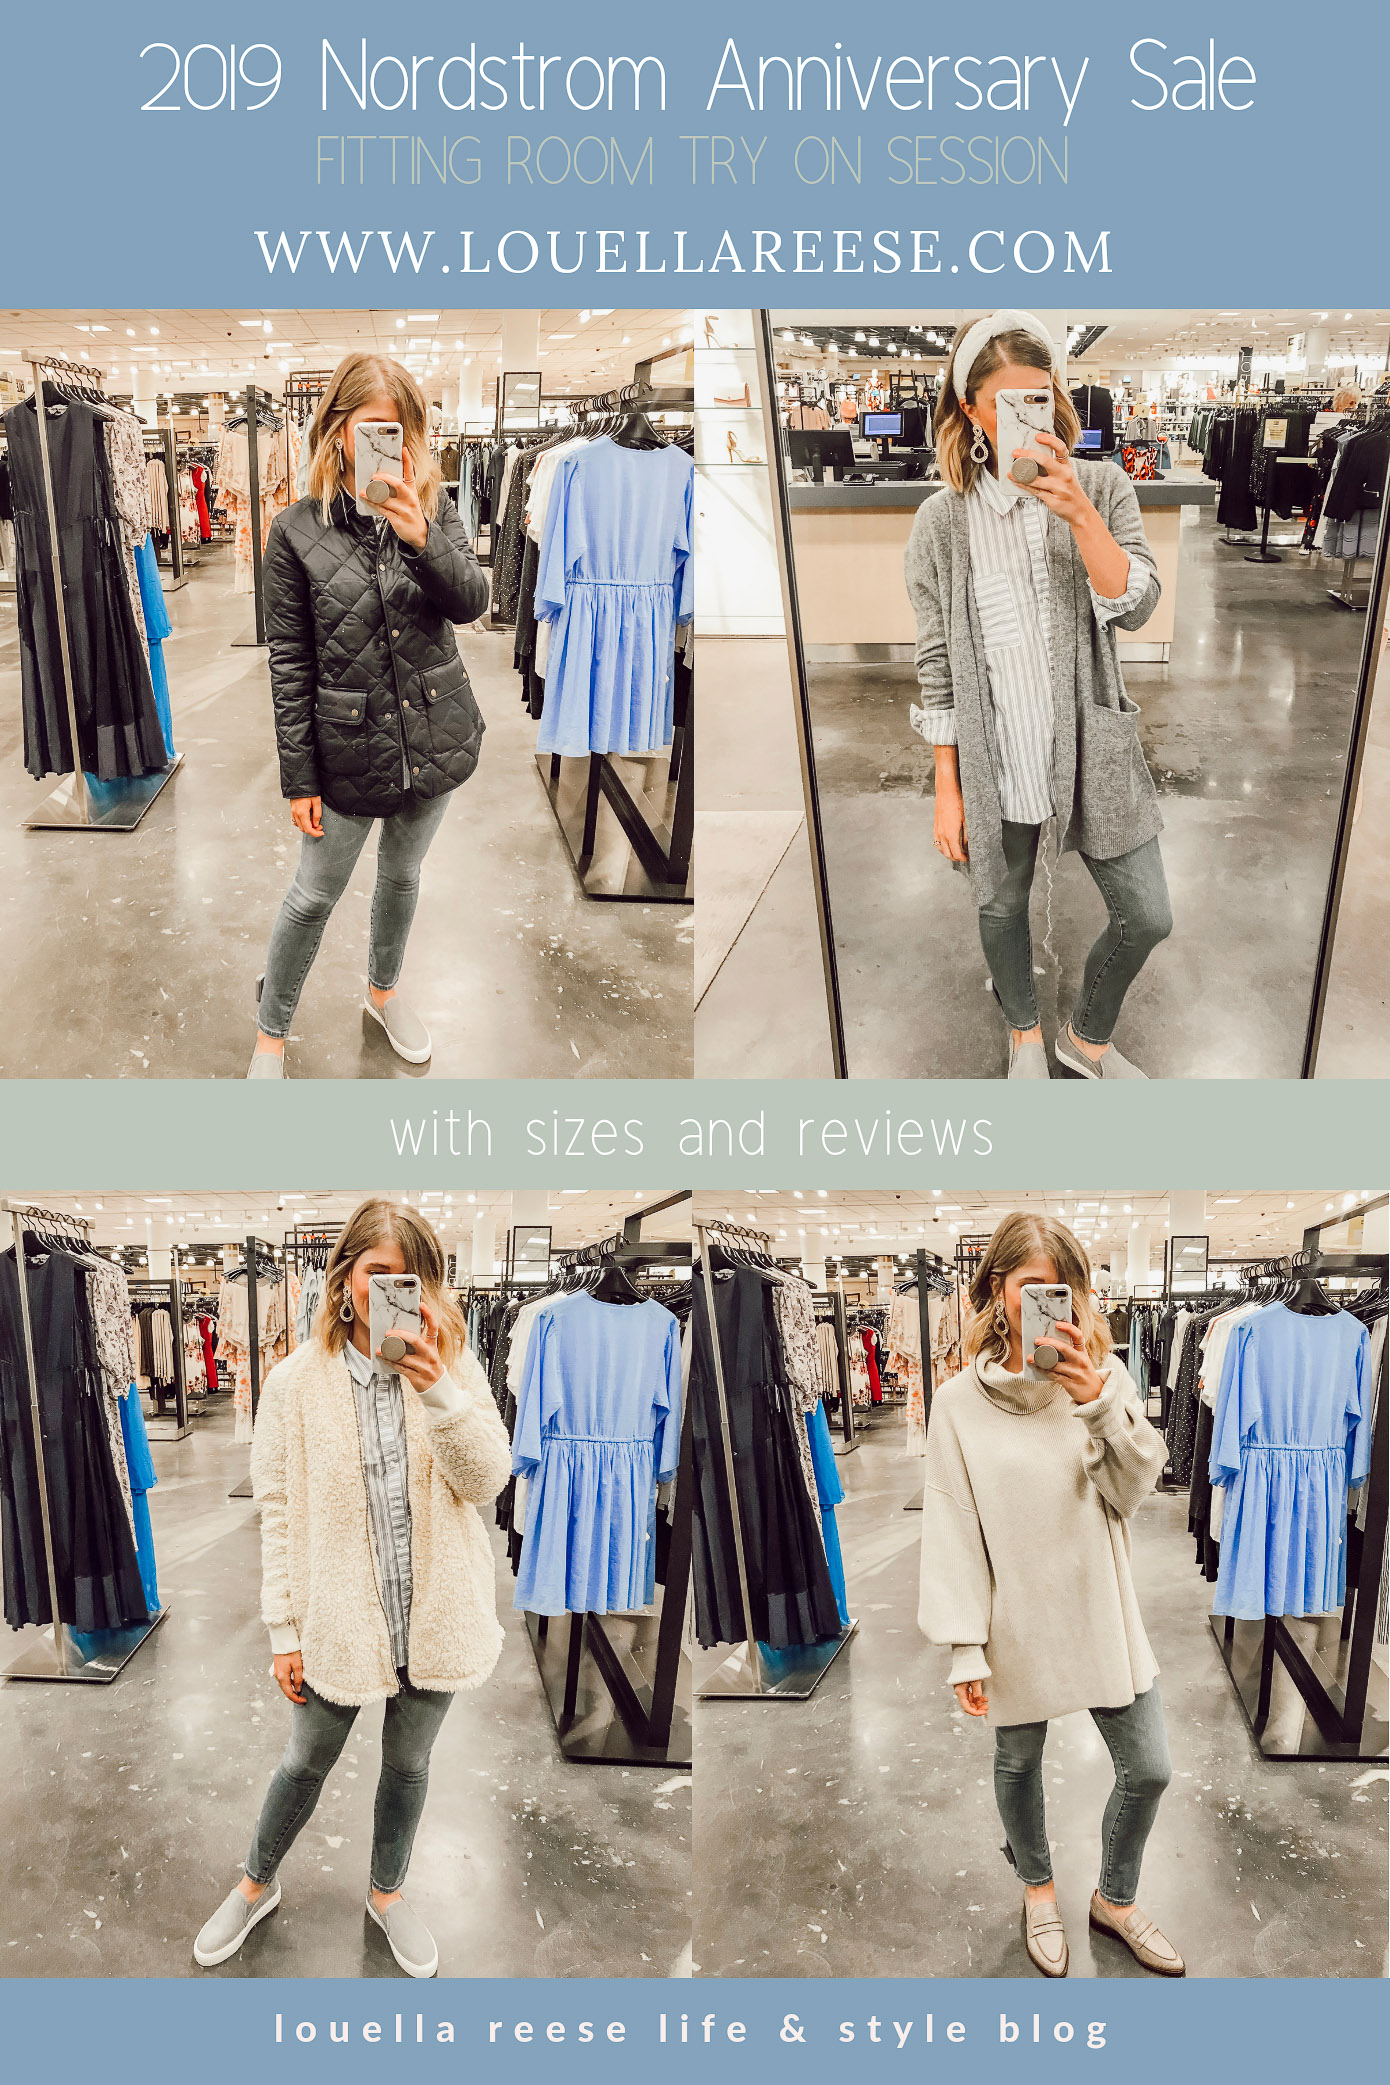 2019 Nordstrom Anniversary Fitting Room Session featured on Louella Reese Life & Style Blog